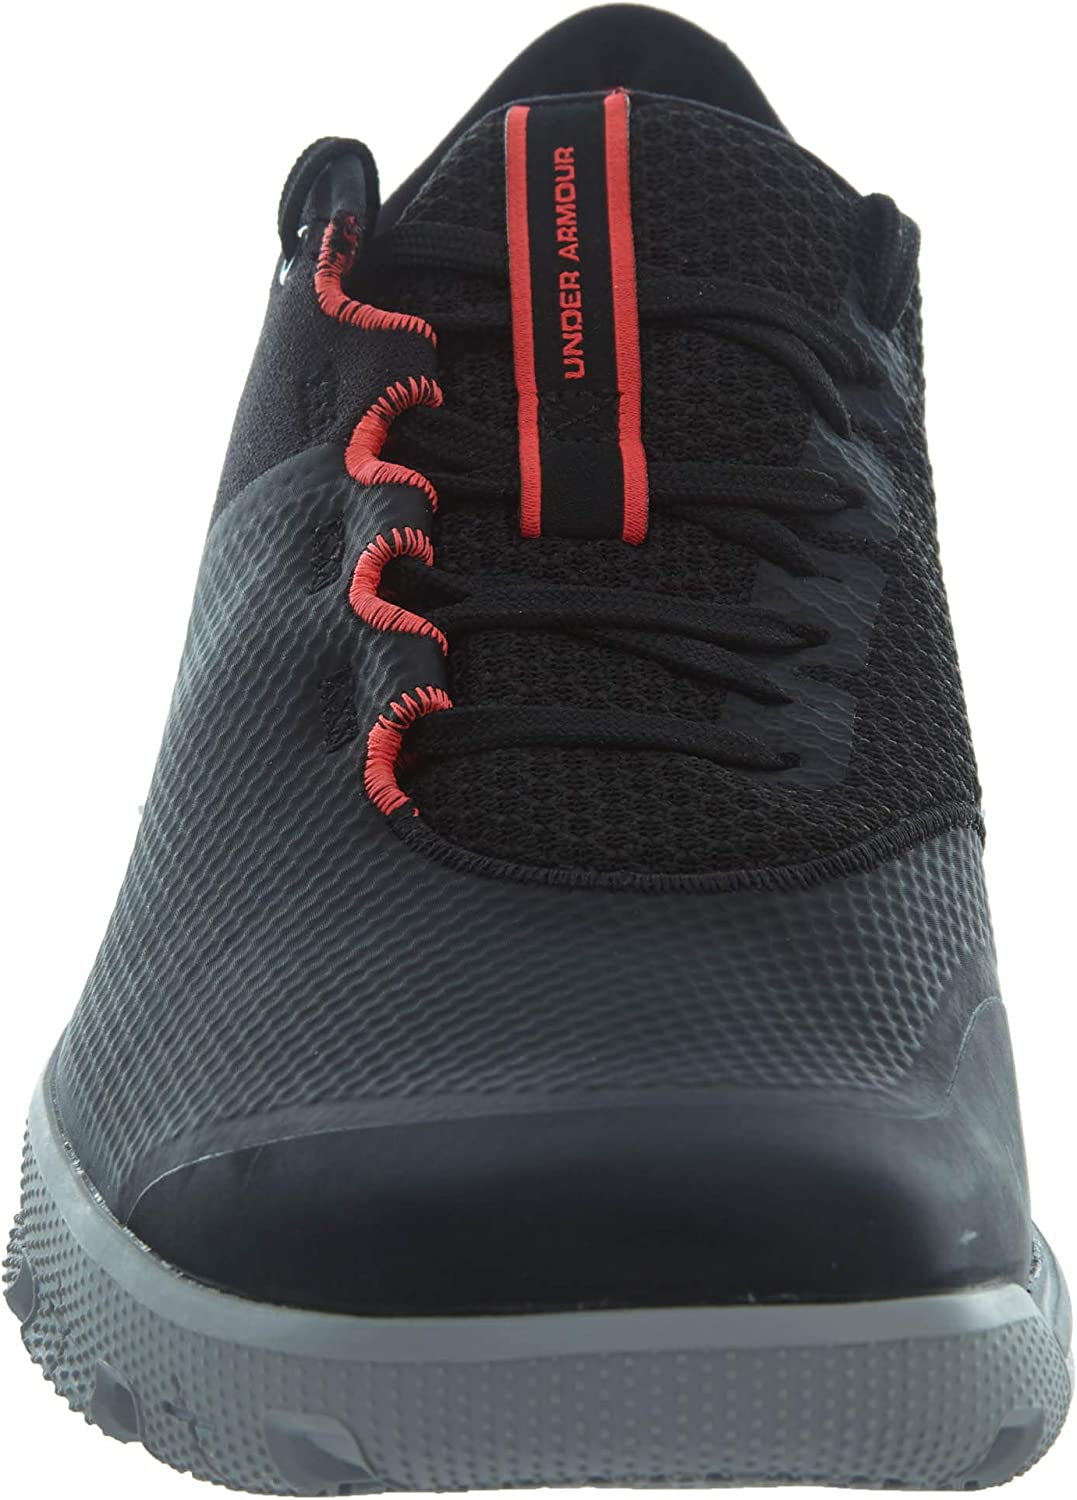 Charged Ultimate 2.0 Sneaker Shoes